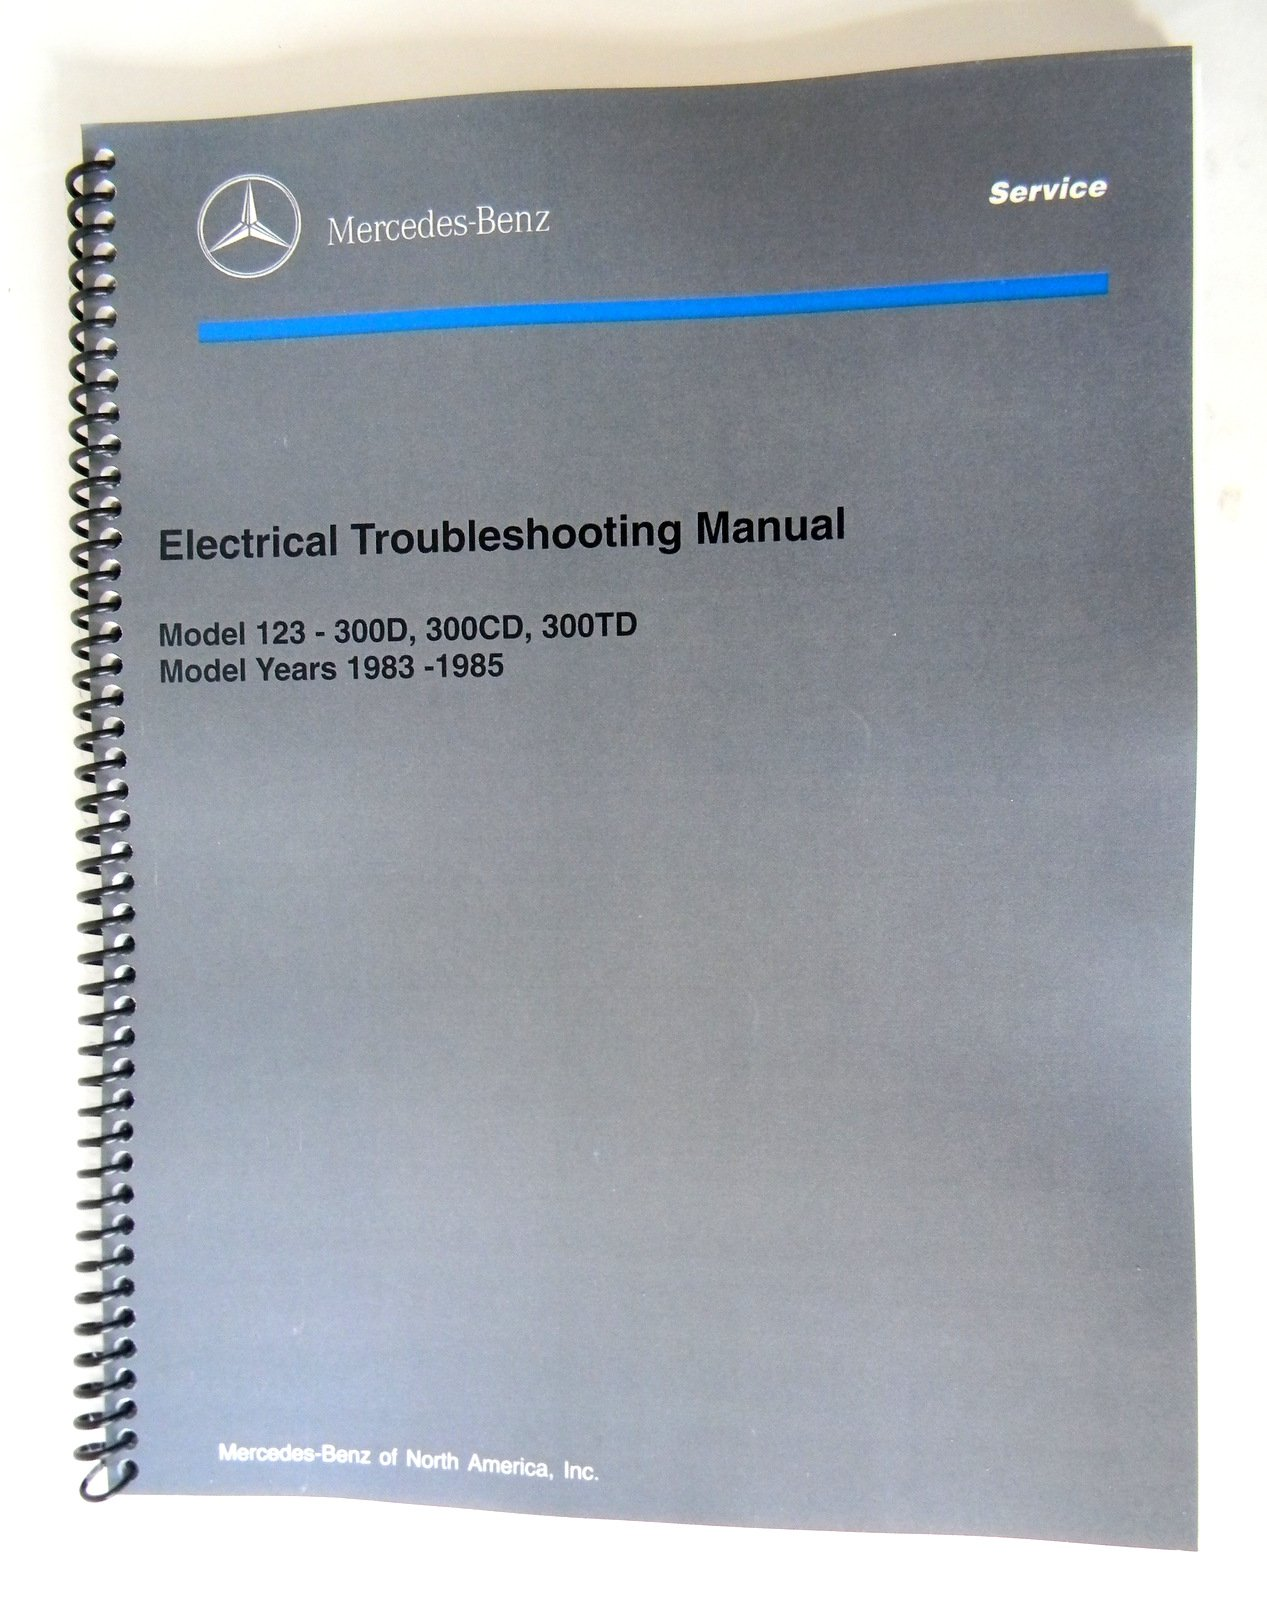 300d Wiring Diagram For 81 Schematic Mercedes Electrical Service Manual W123 300cd 300td 1983 1985 Generators